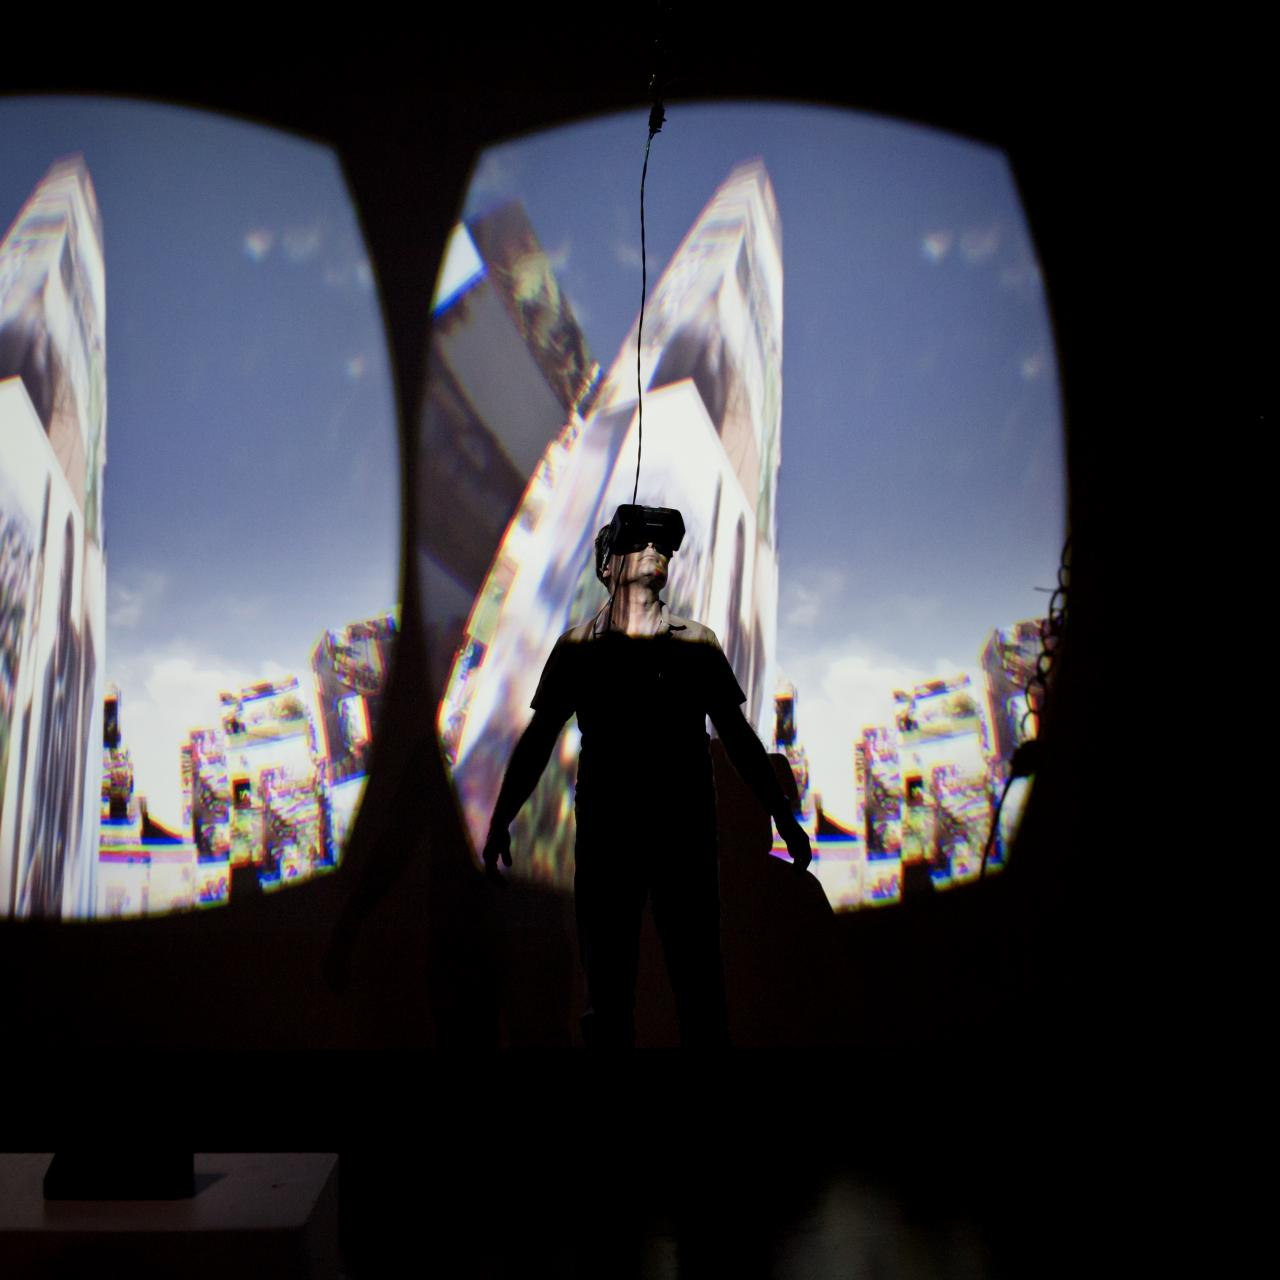 A man looking through 3-D glasses